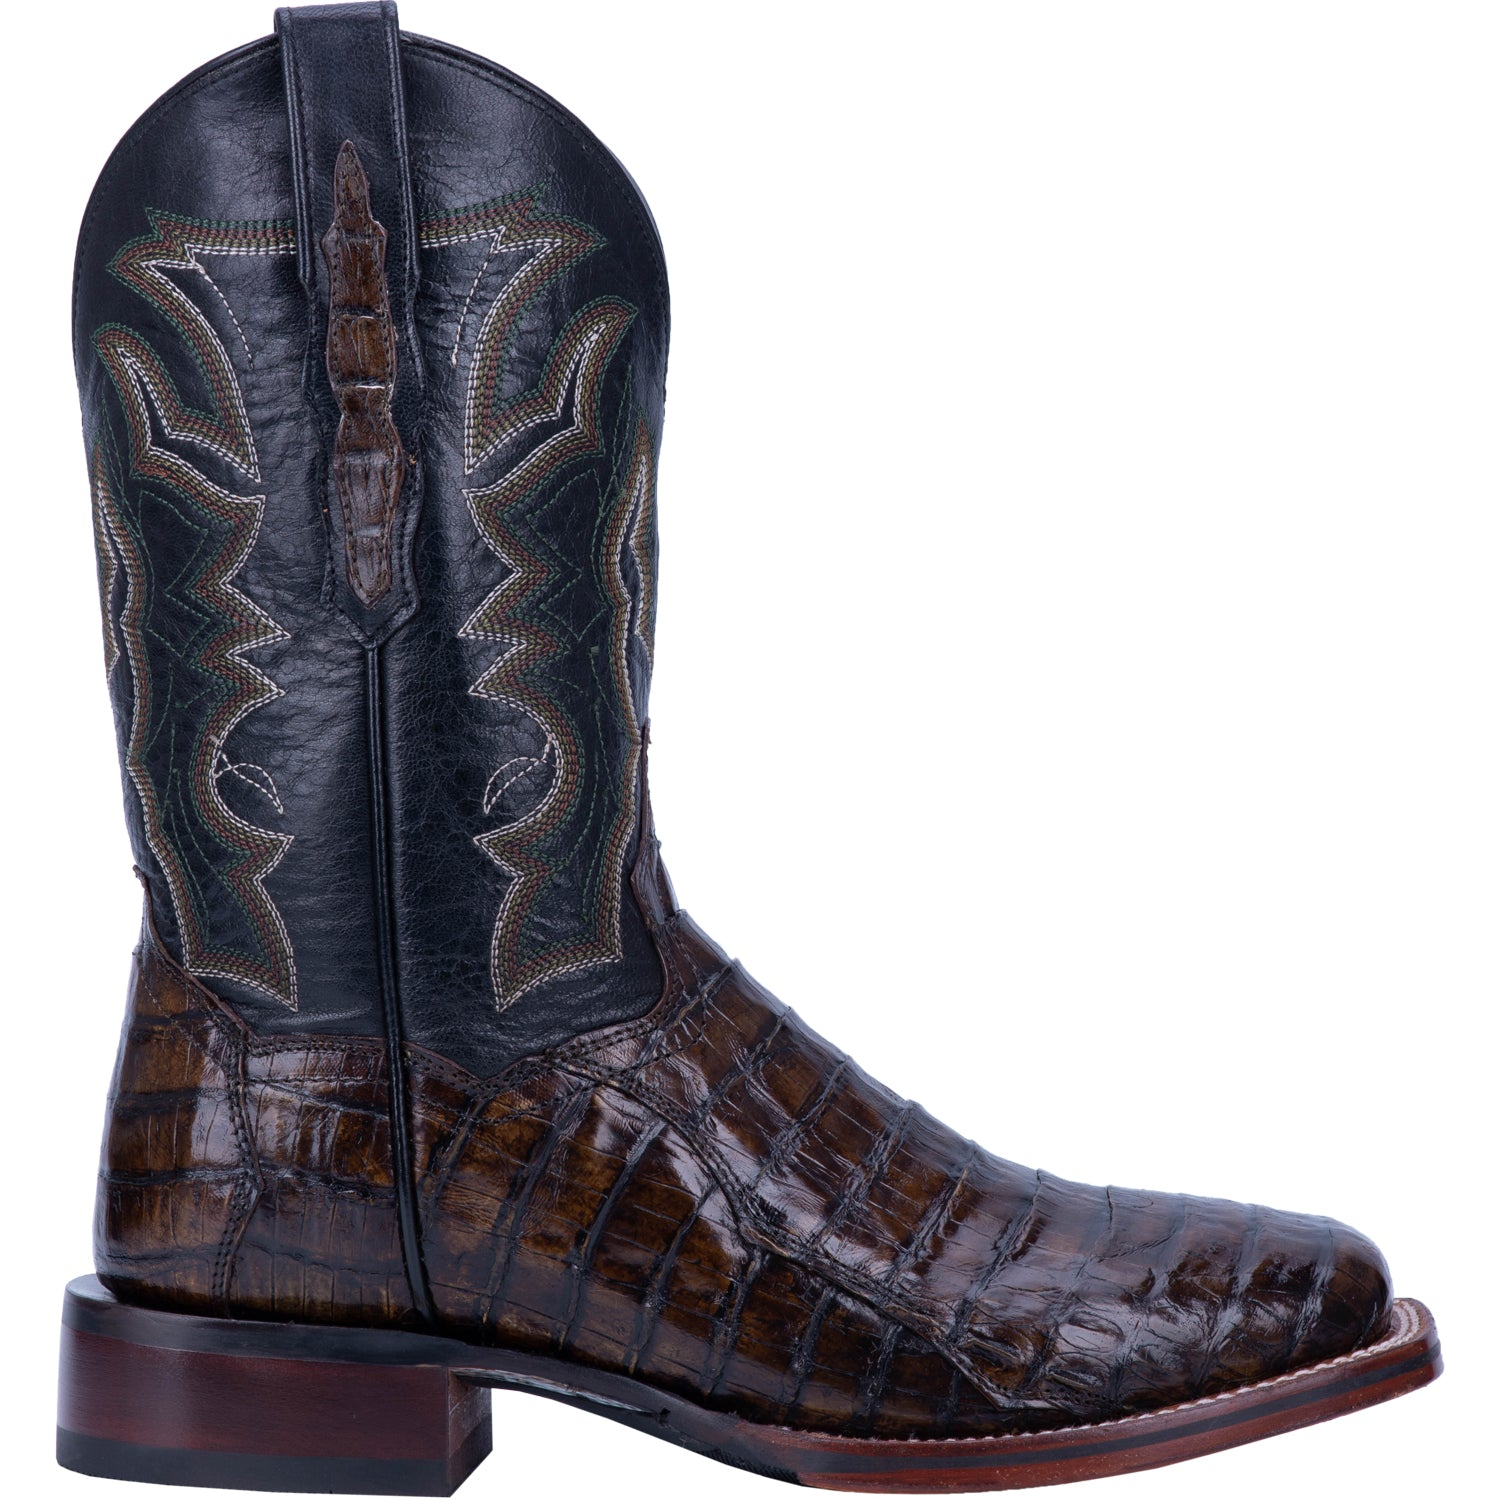 KINGSLY CAIMAN BOOT 5547779784746